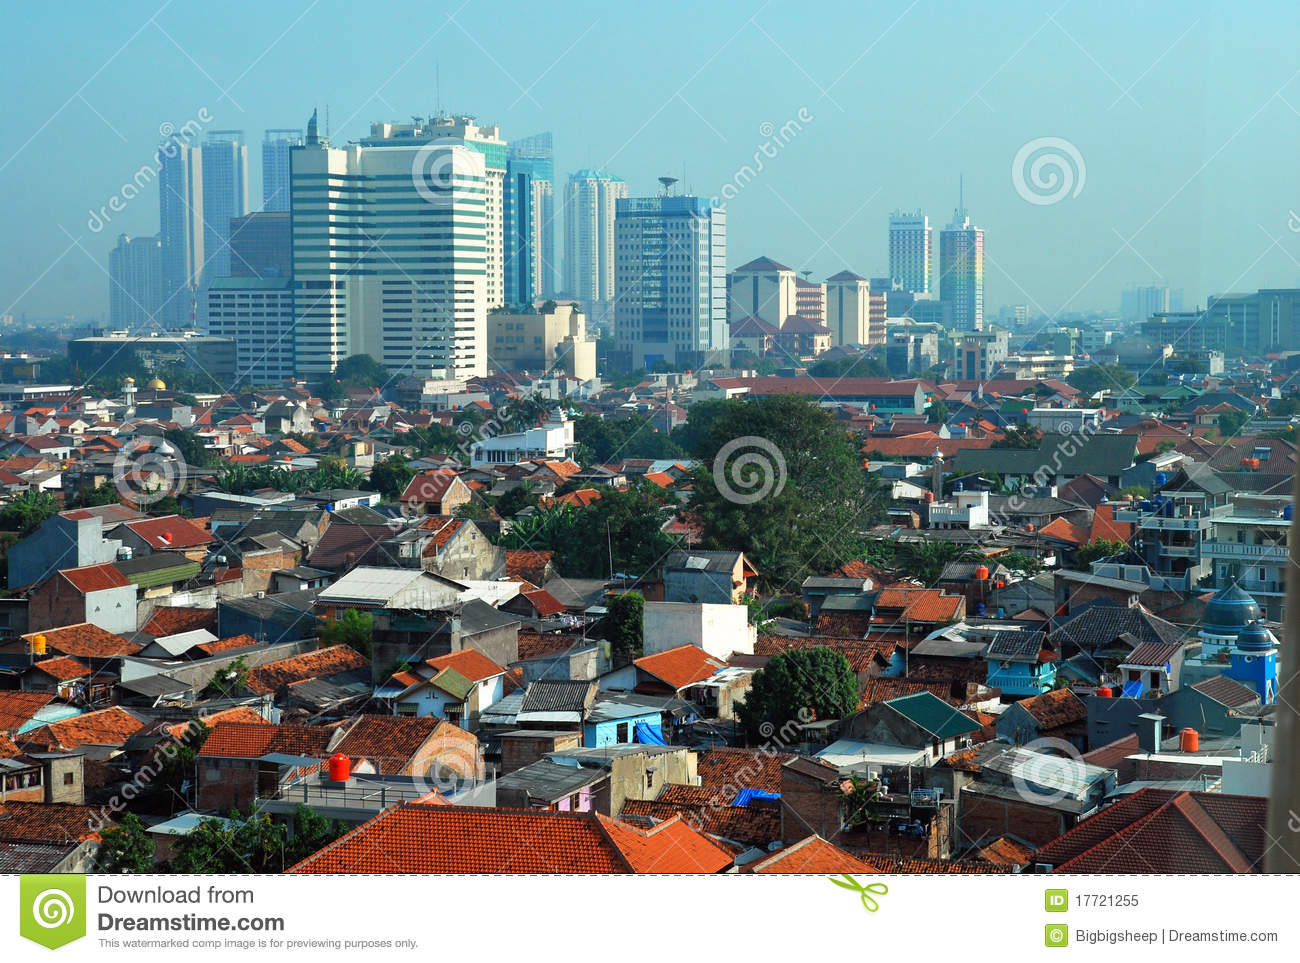 9 jakarta skyline gt; daan holthausen gt; indonesie on flickr